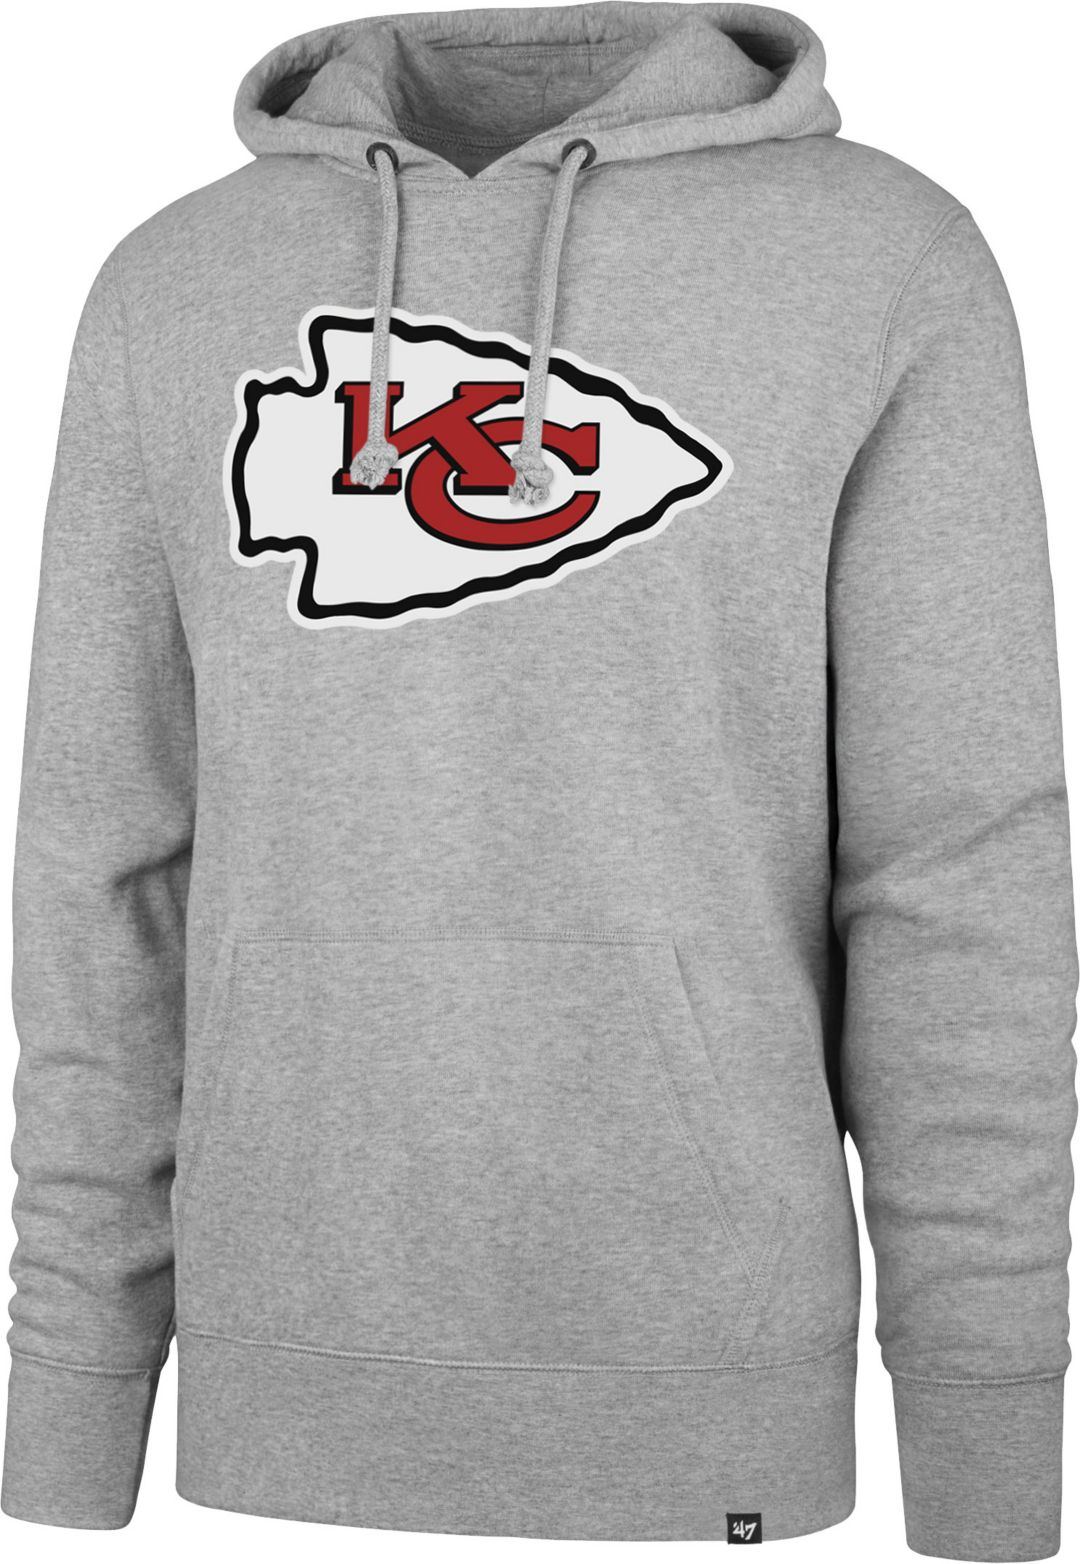 new arrival 2e3ad 97689 '47 Men's Kansas City Chiefs Headline Grey Hoodie